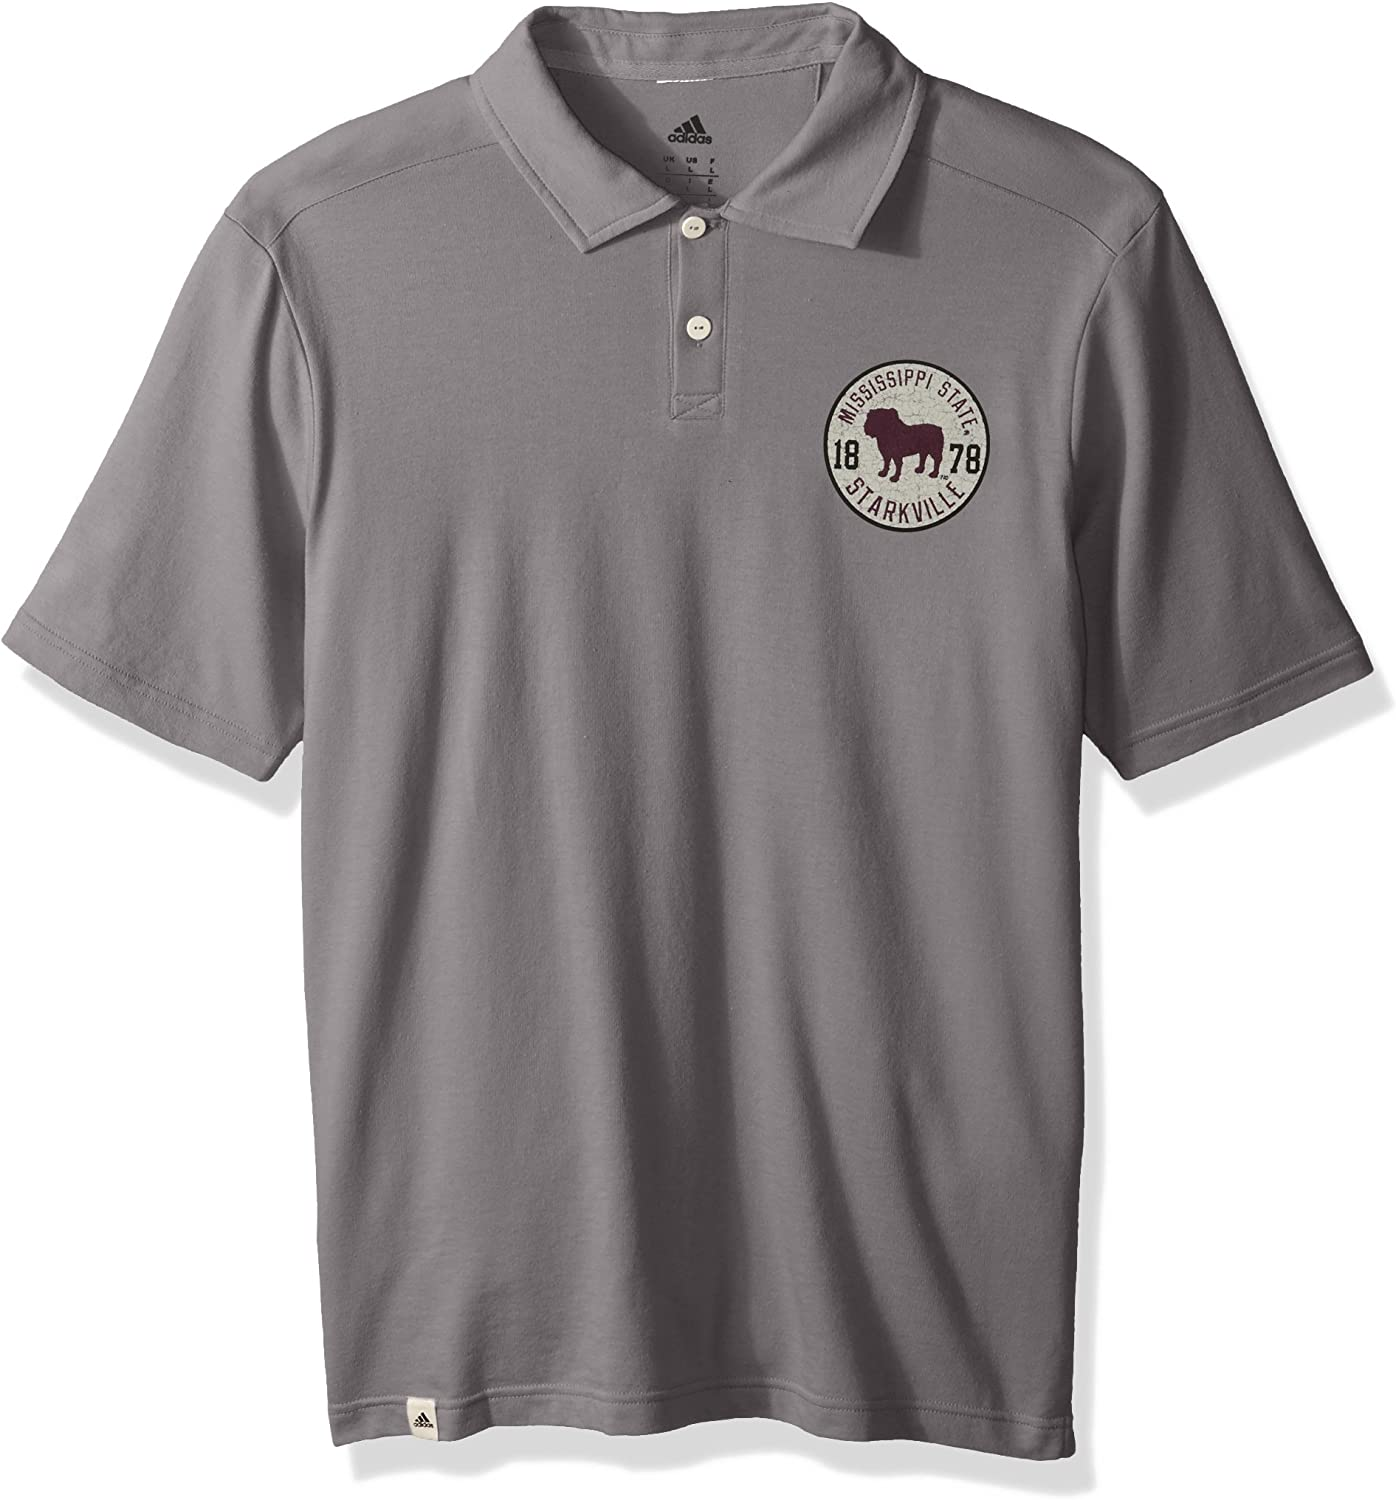 NCAA Mens Crackled Badge S S Polo